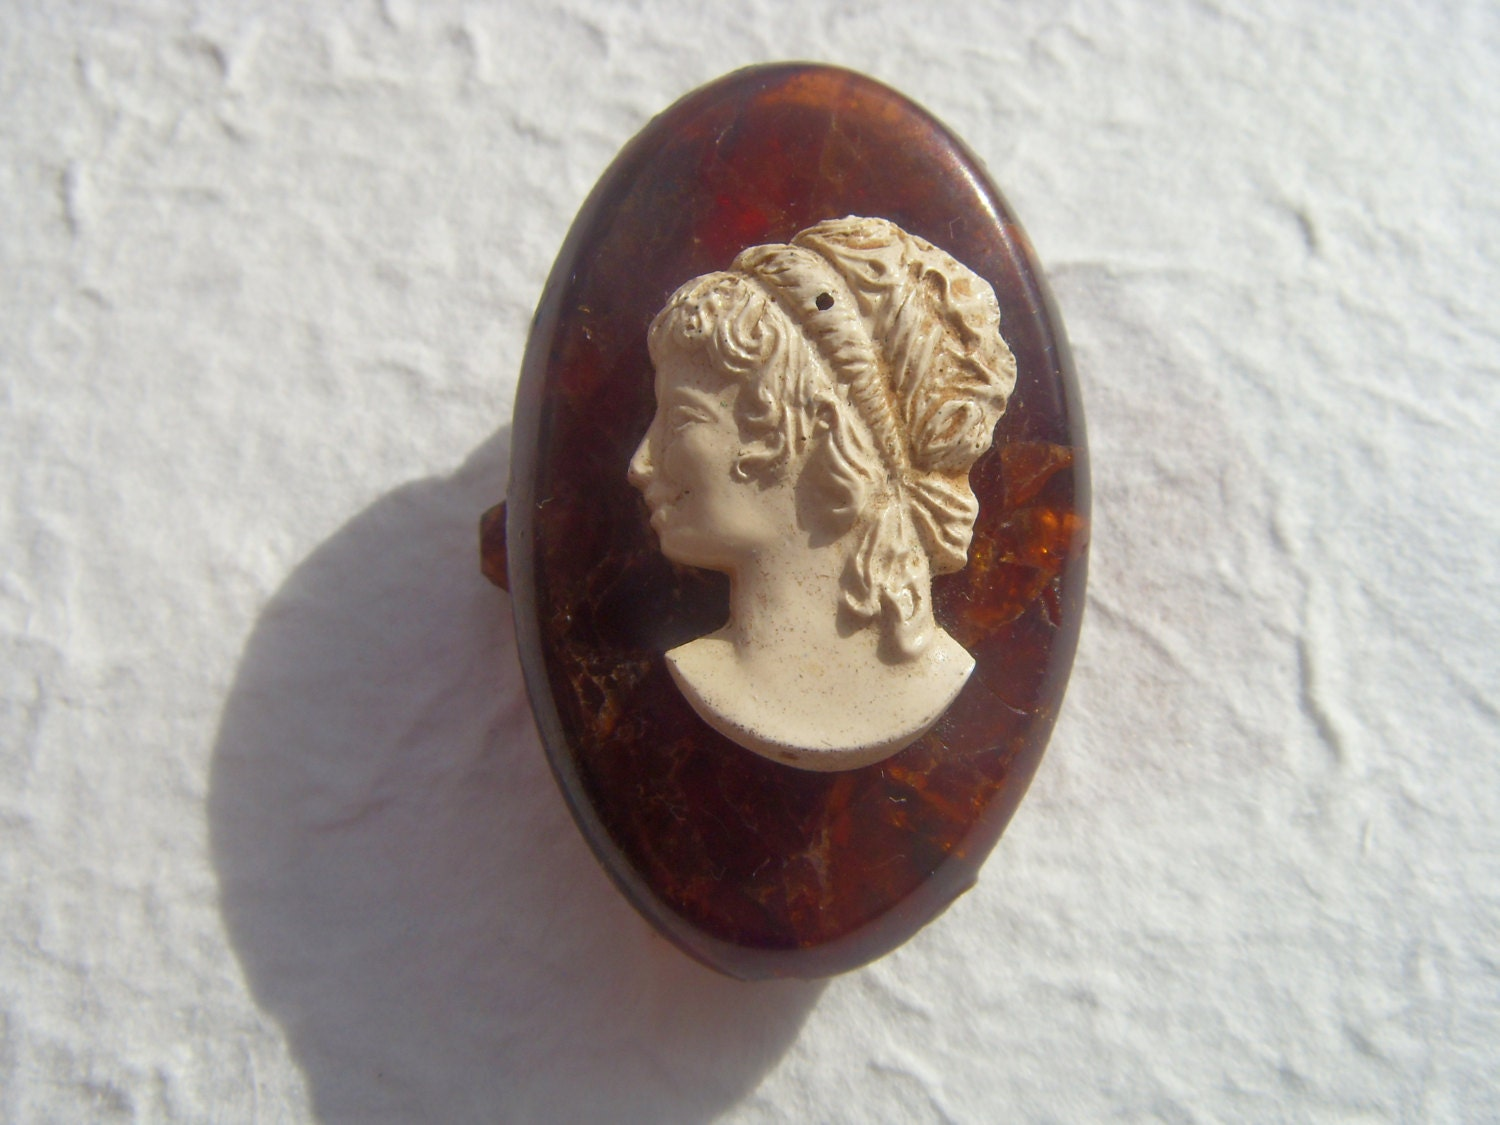 SALE 25% OFF Vintage Soviet Cameo Amber Brooch Made in USSR in 1970s - Astra9